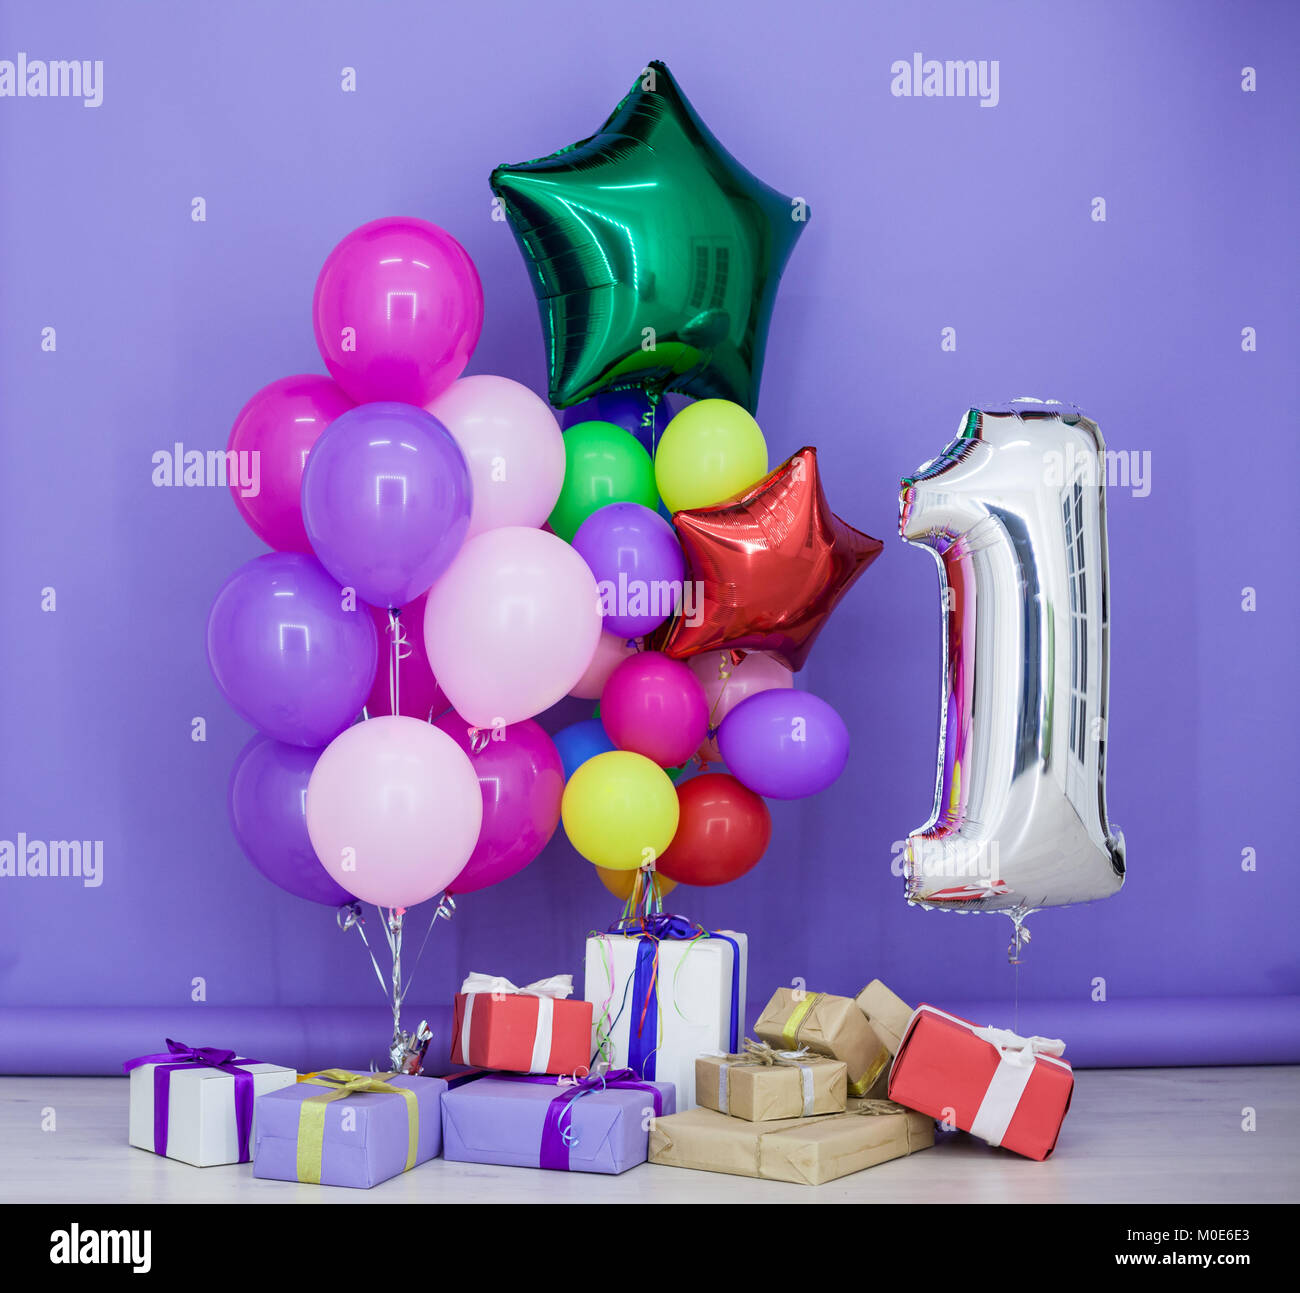 Isolated Gold Helium Balloon Stockfotos & Isolated Gold Helium ...